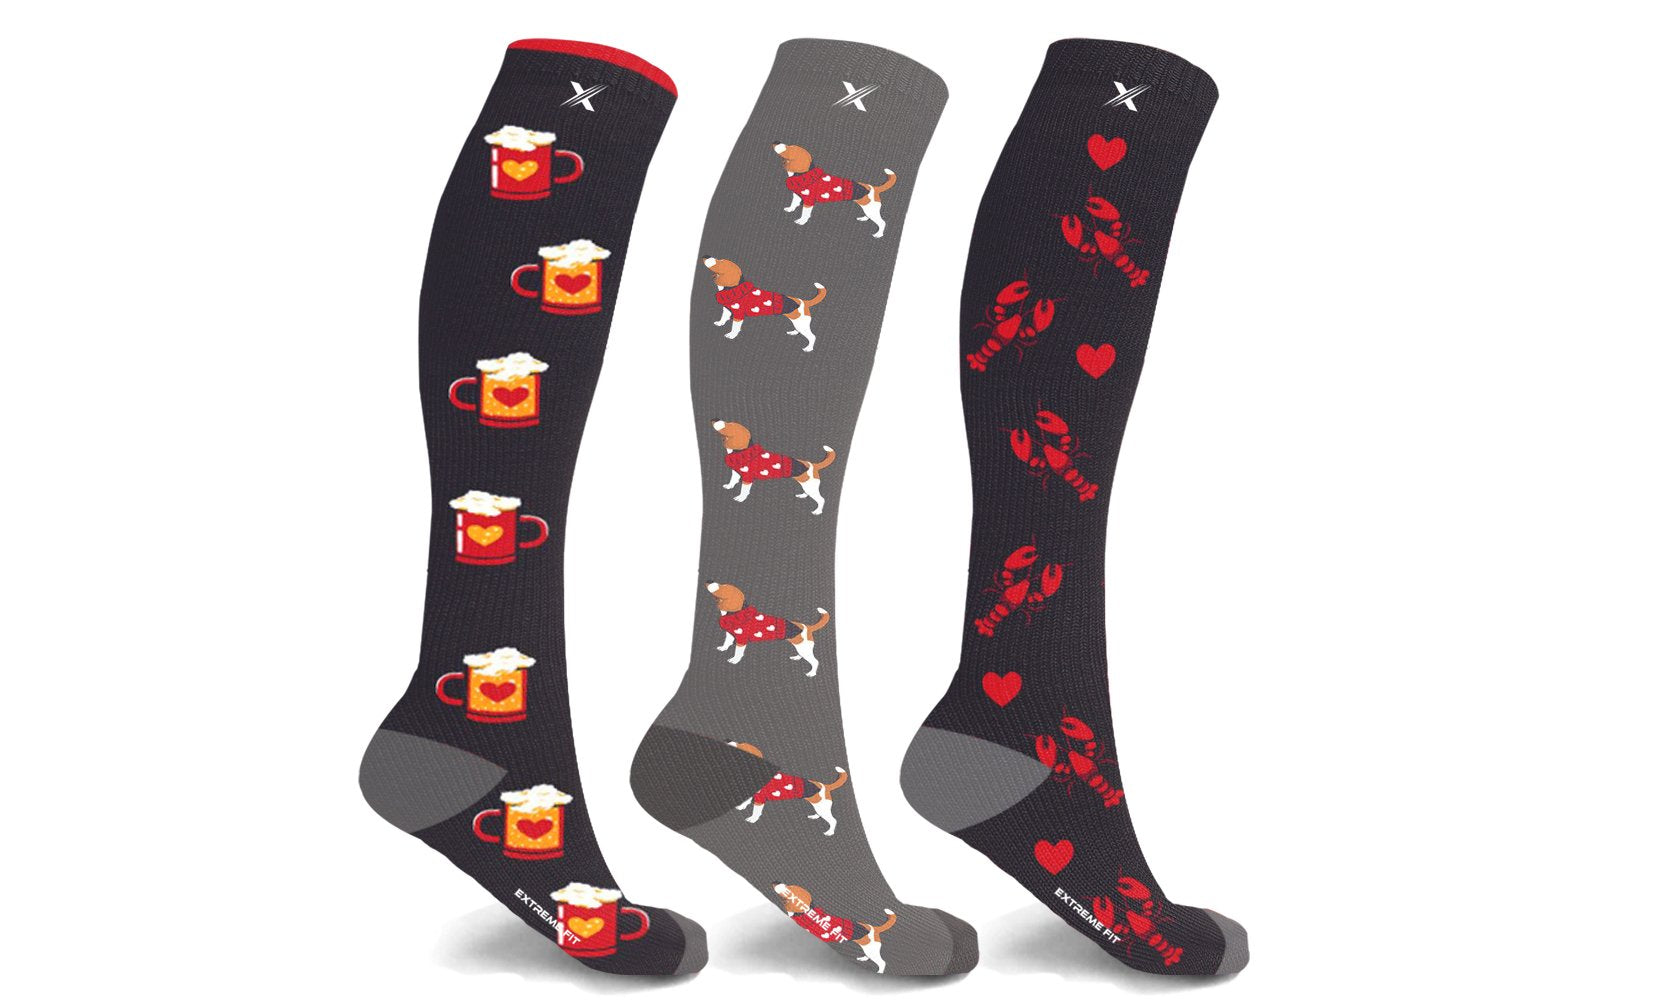 Boyfriend and Girlfriend Knee-High Compression Socks (3-Pairs or 6-Pairs)